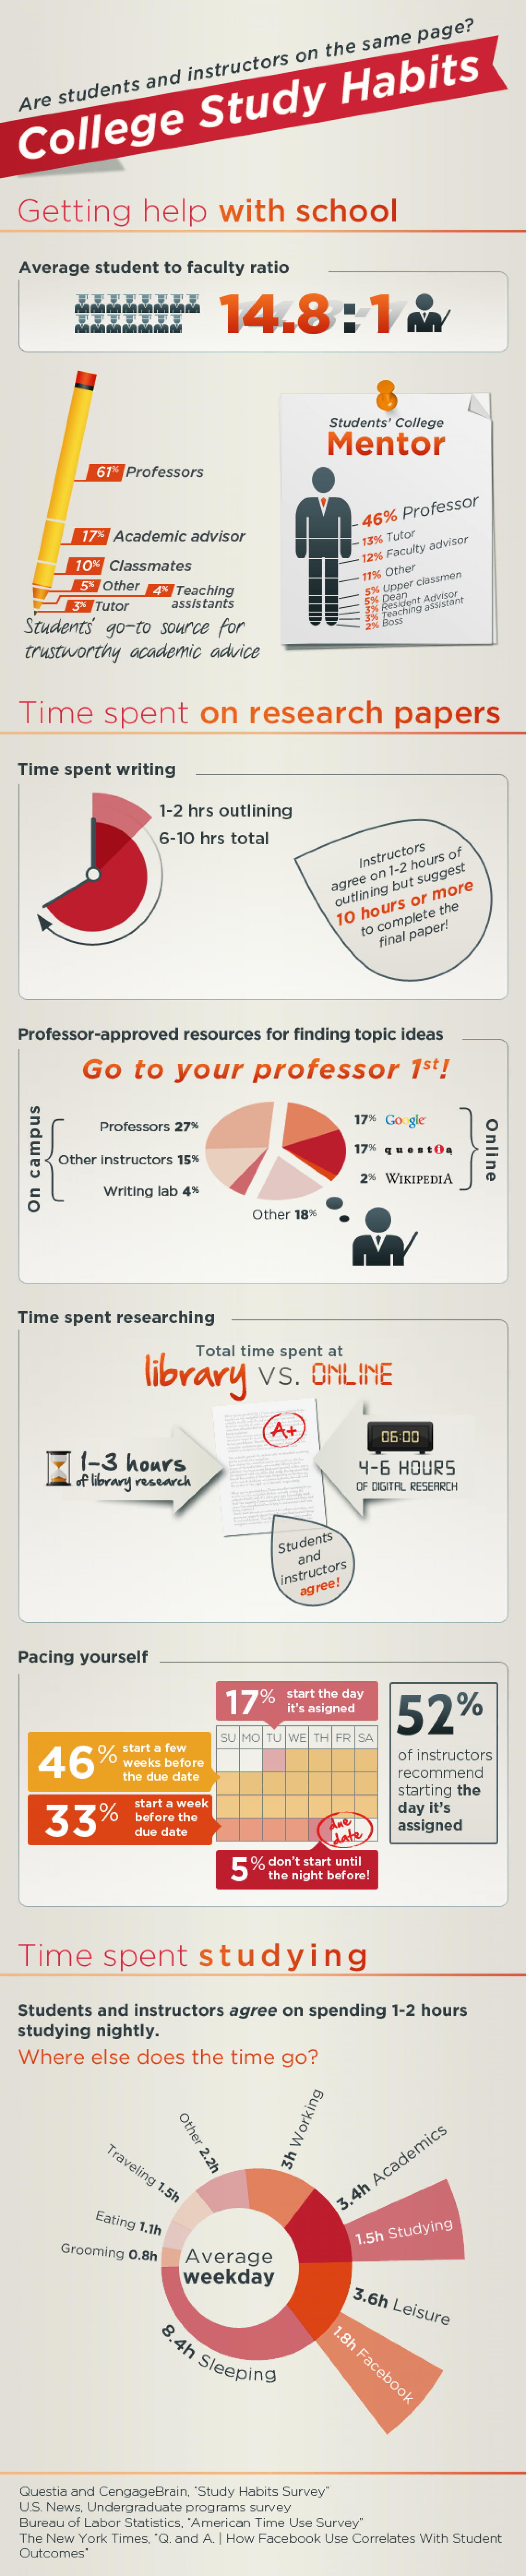 College Study Habits Infographic